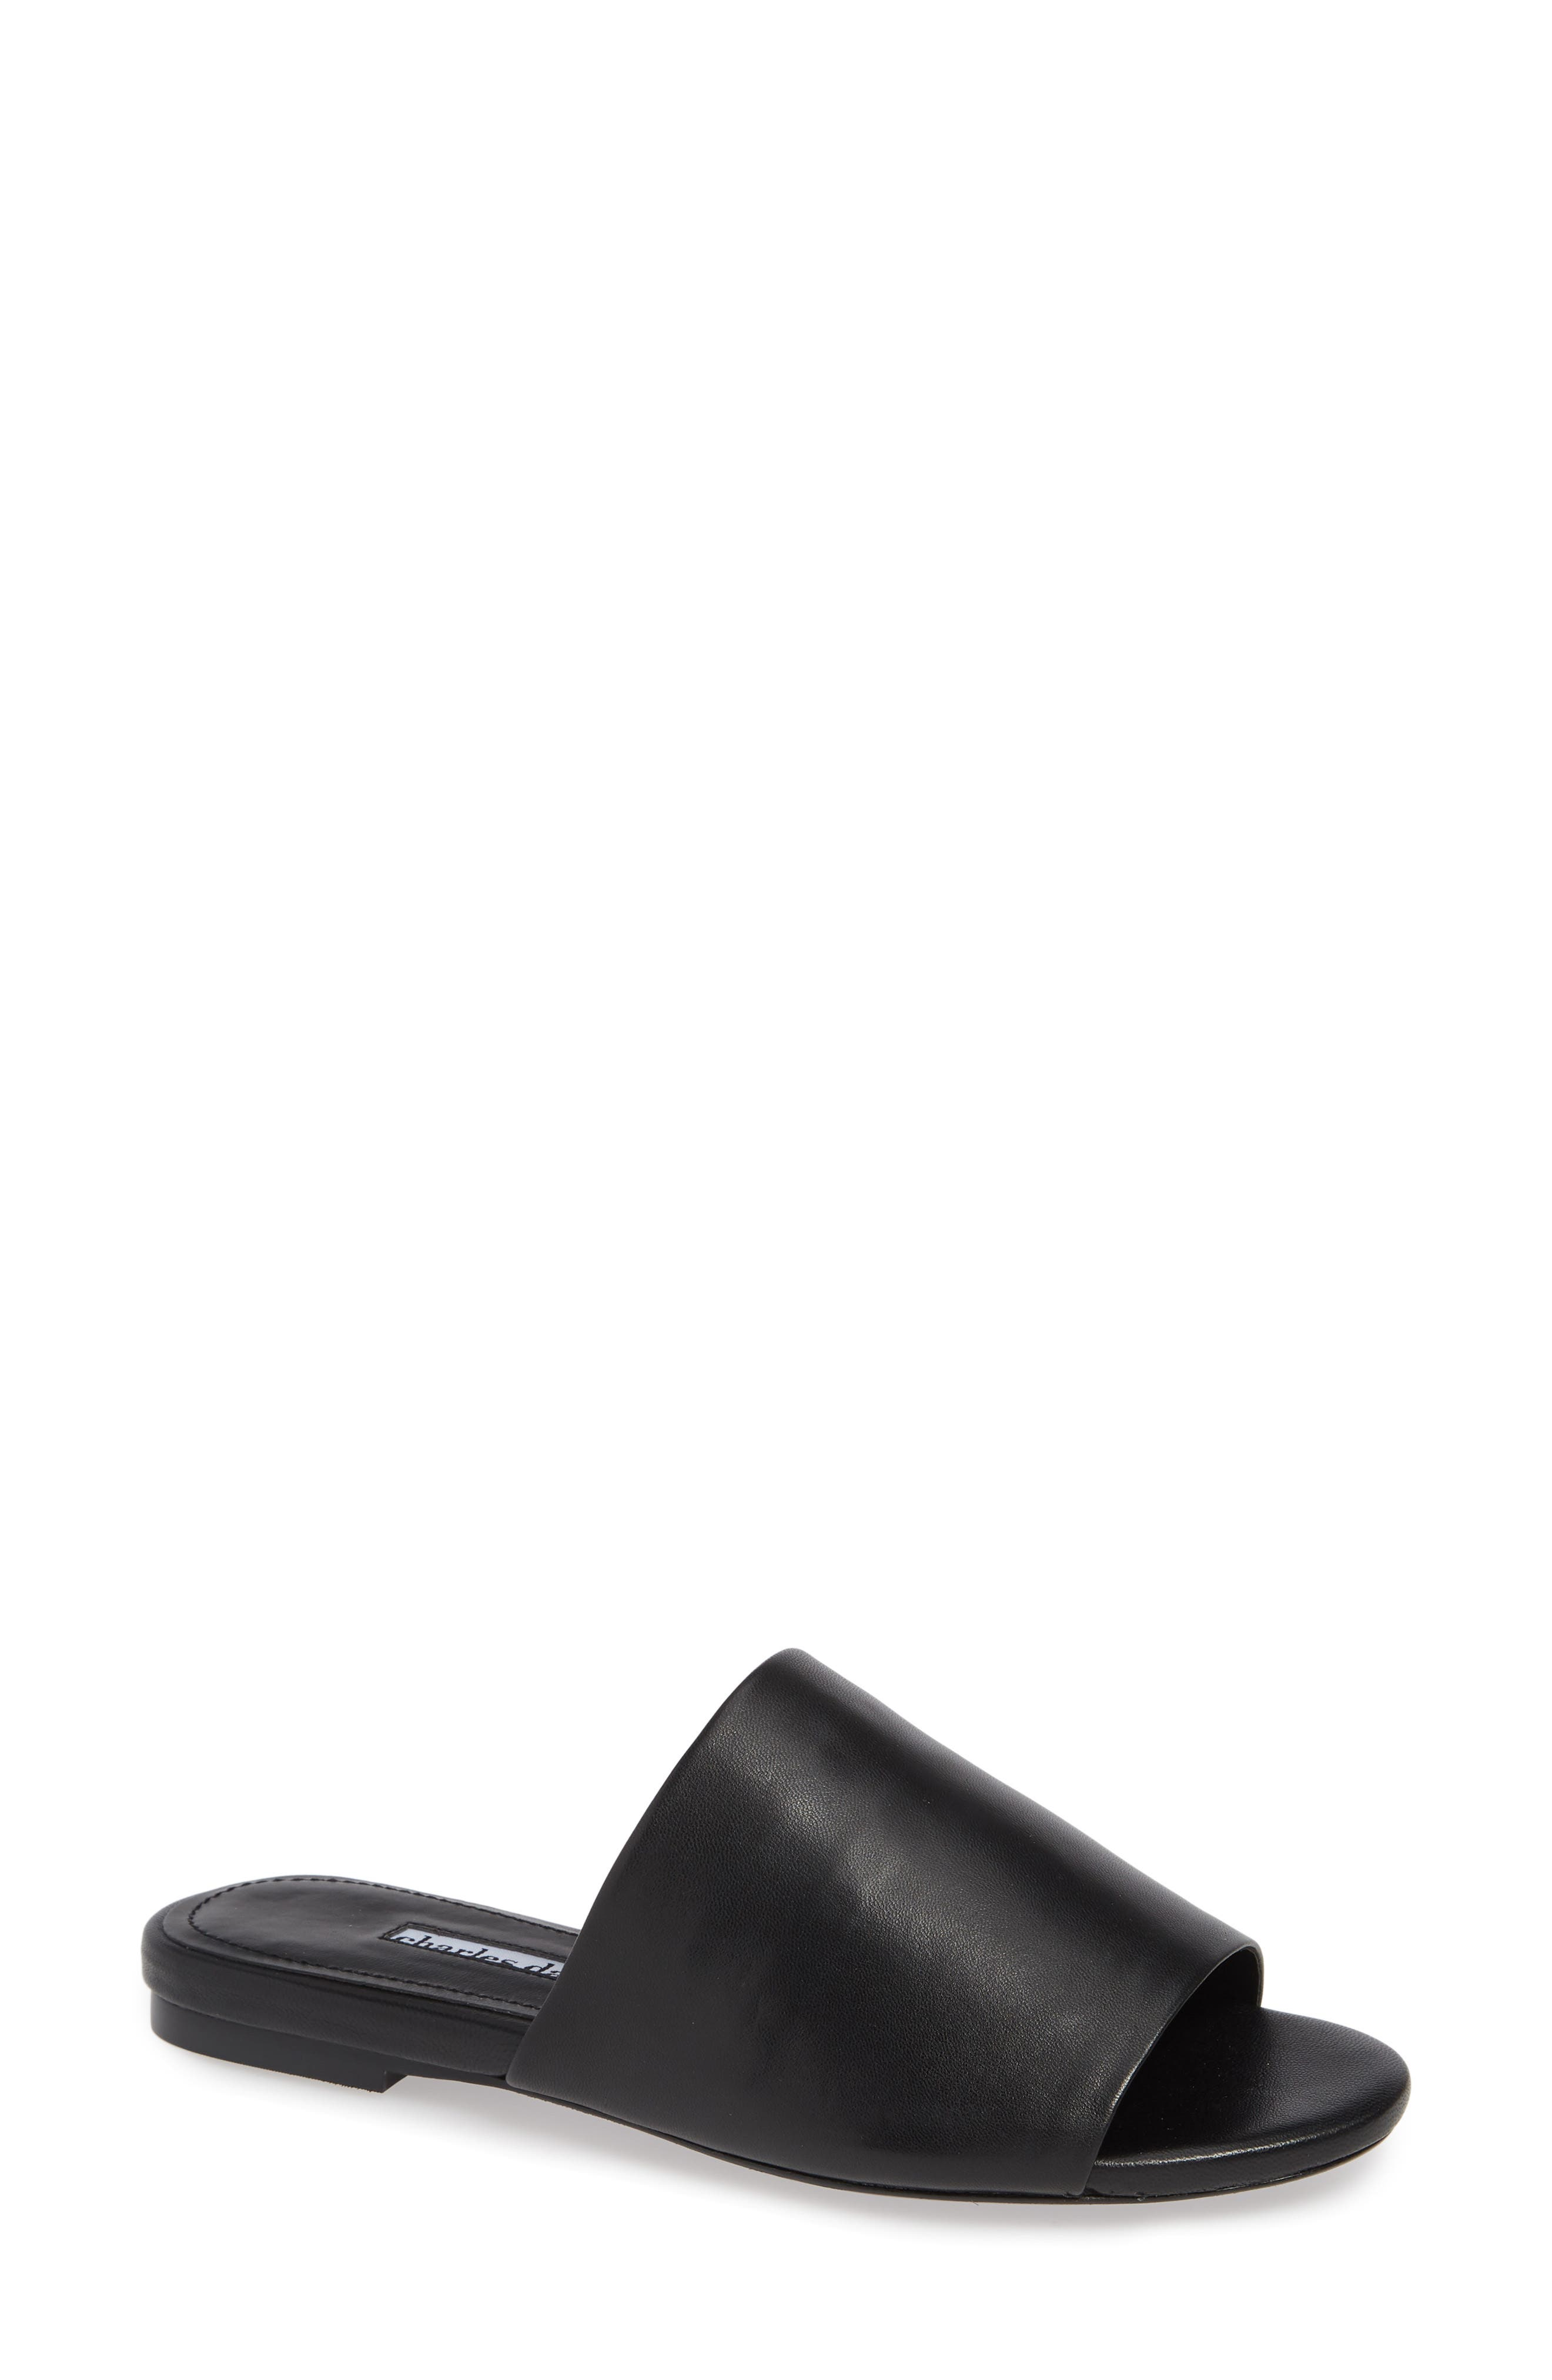 CHARLES DAVID Women'S Leather Slide Sandals in Black